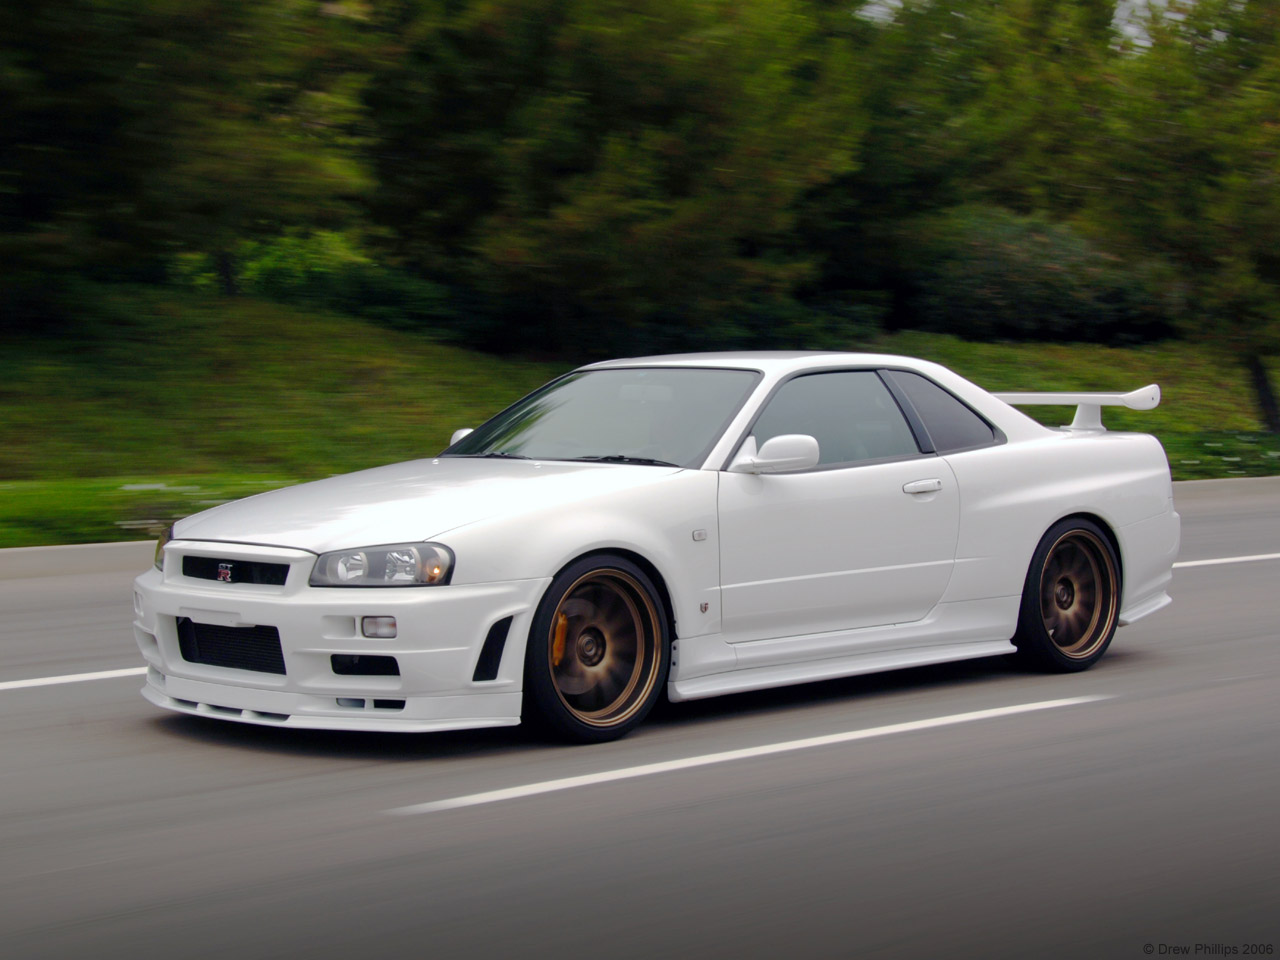 concepts car and skyline - photo #43